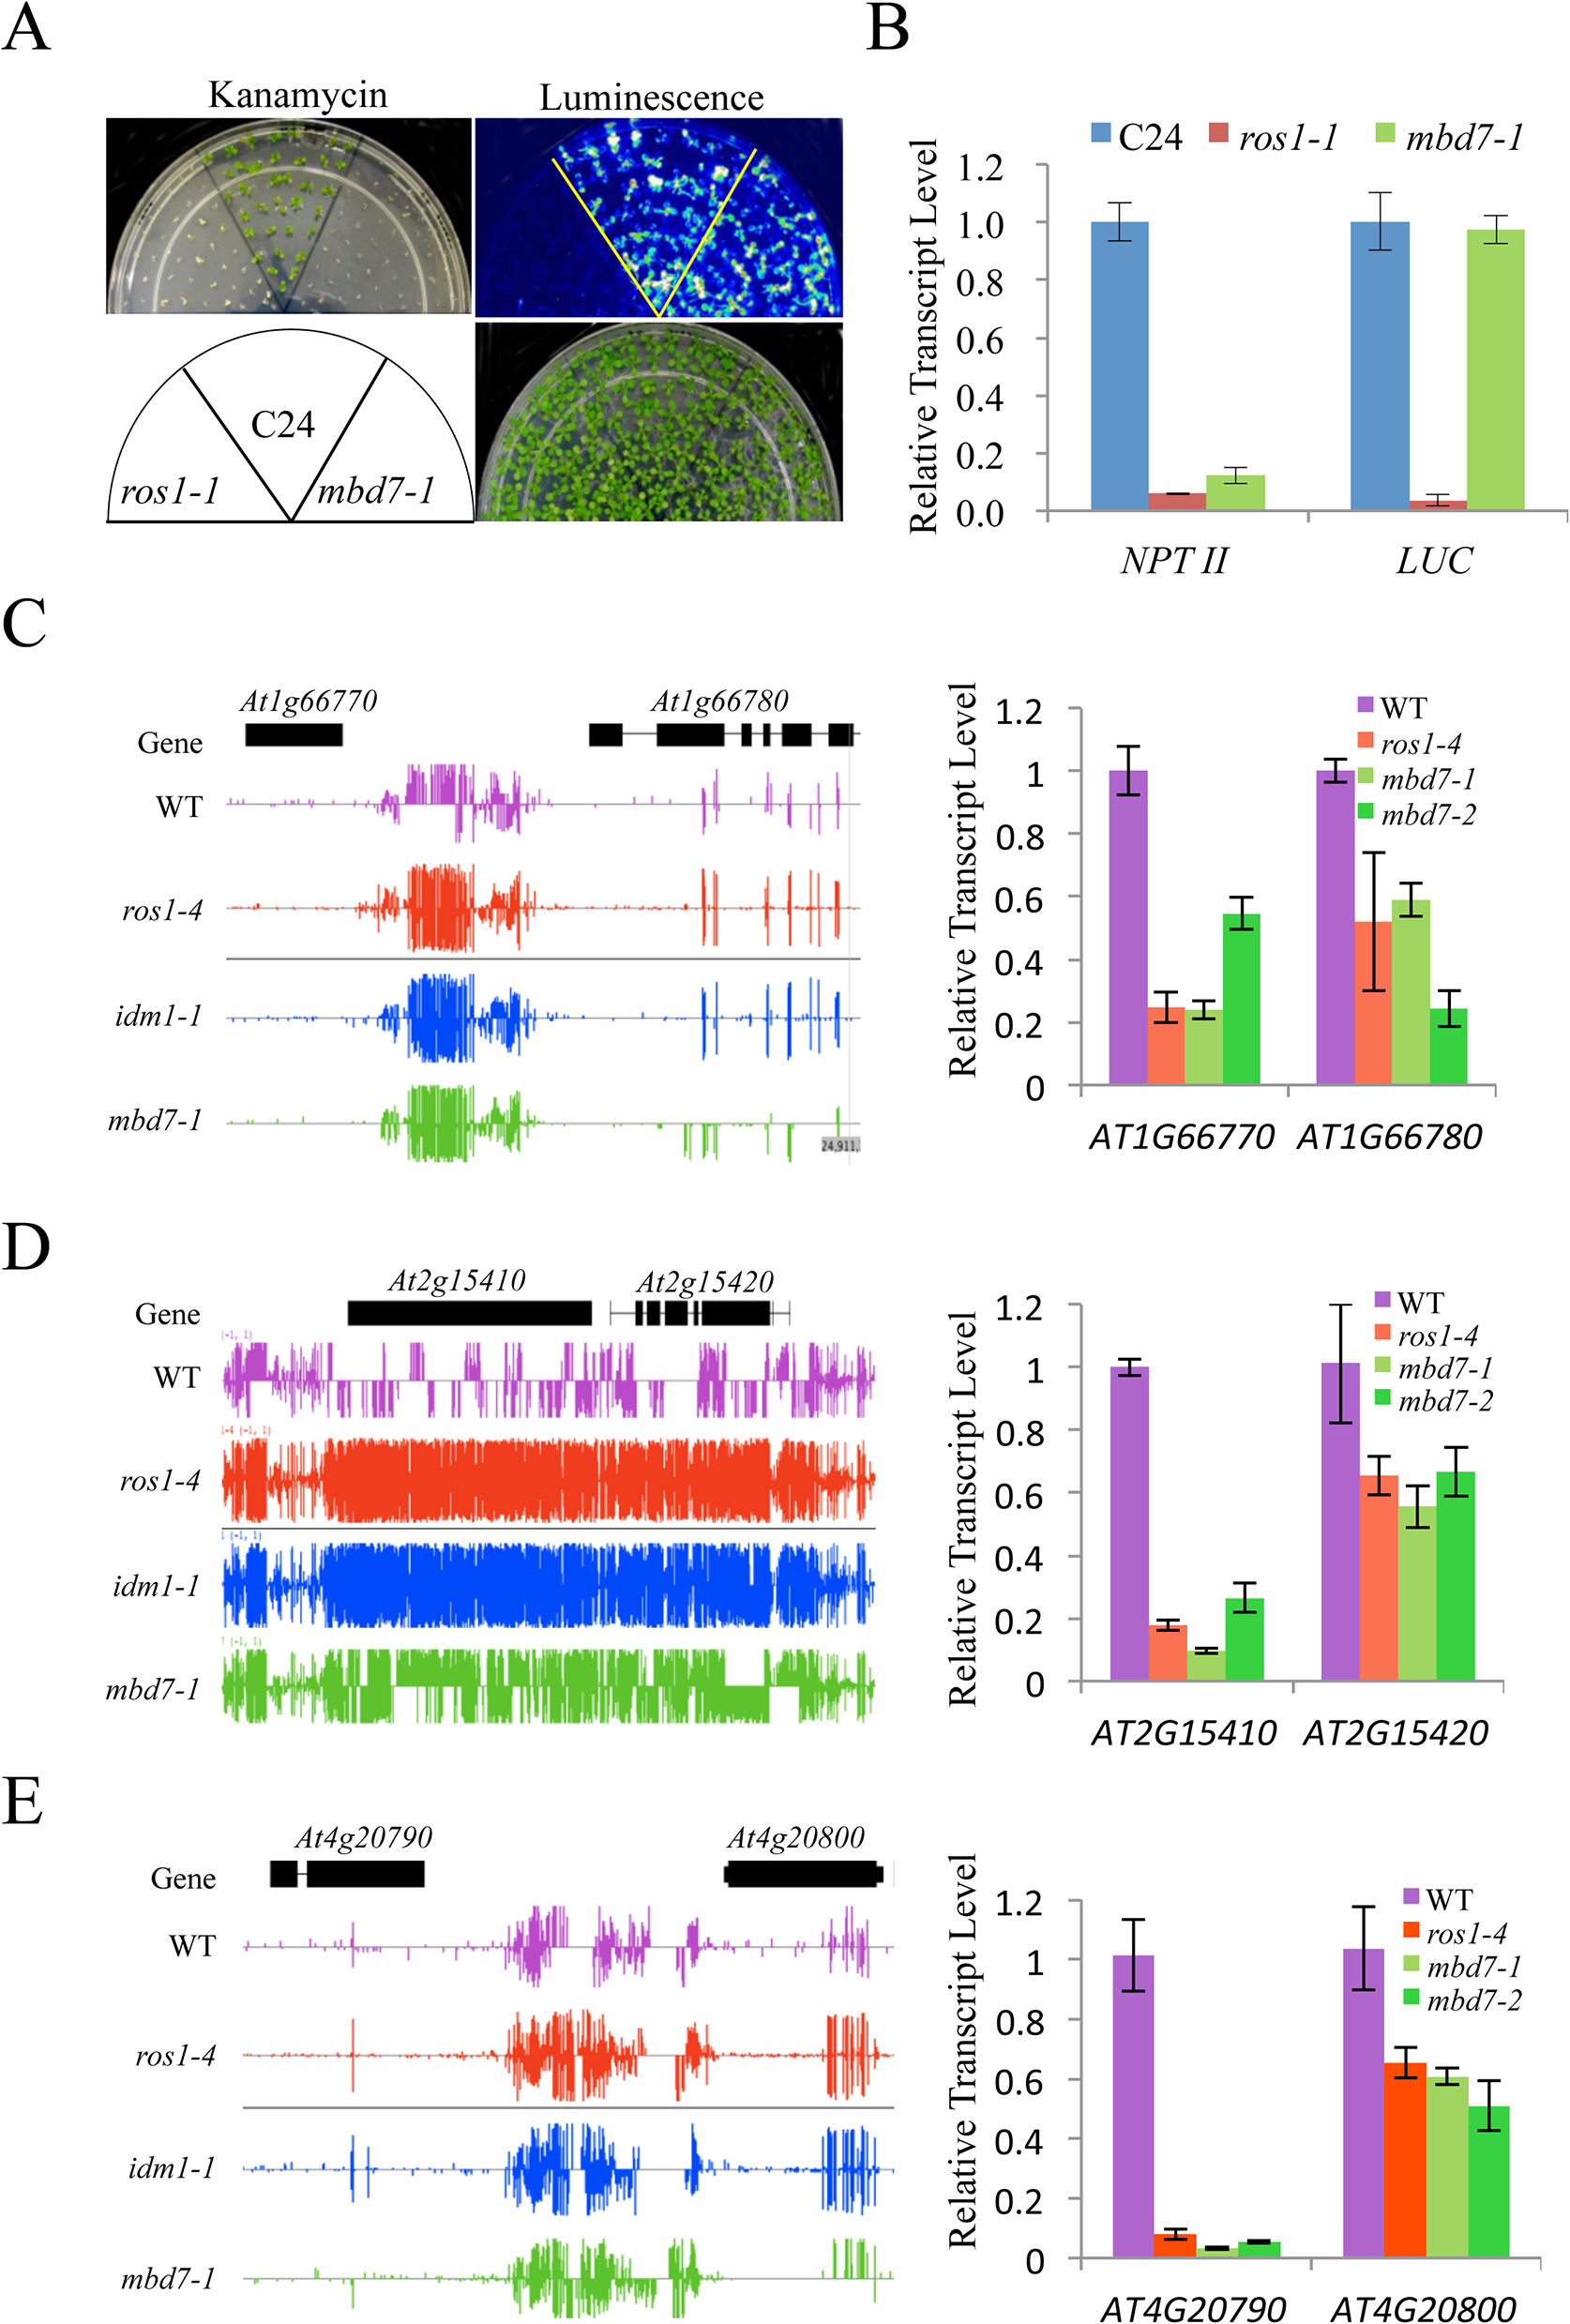 MBD7 prevents the silencing of a report gene and some endogenous genes.